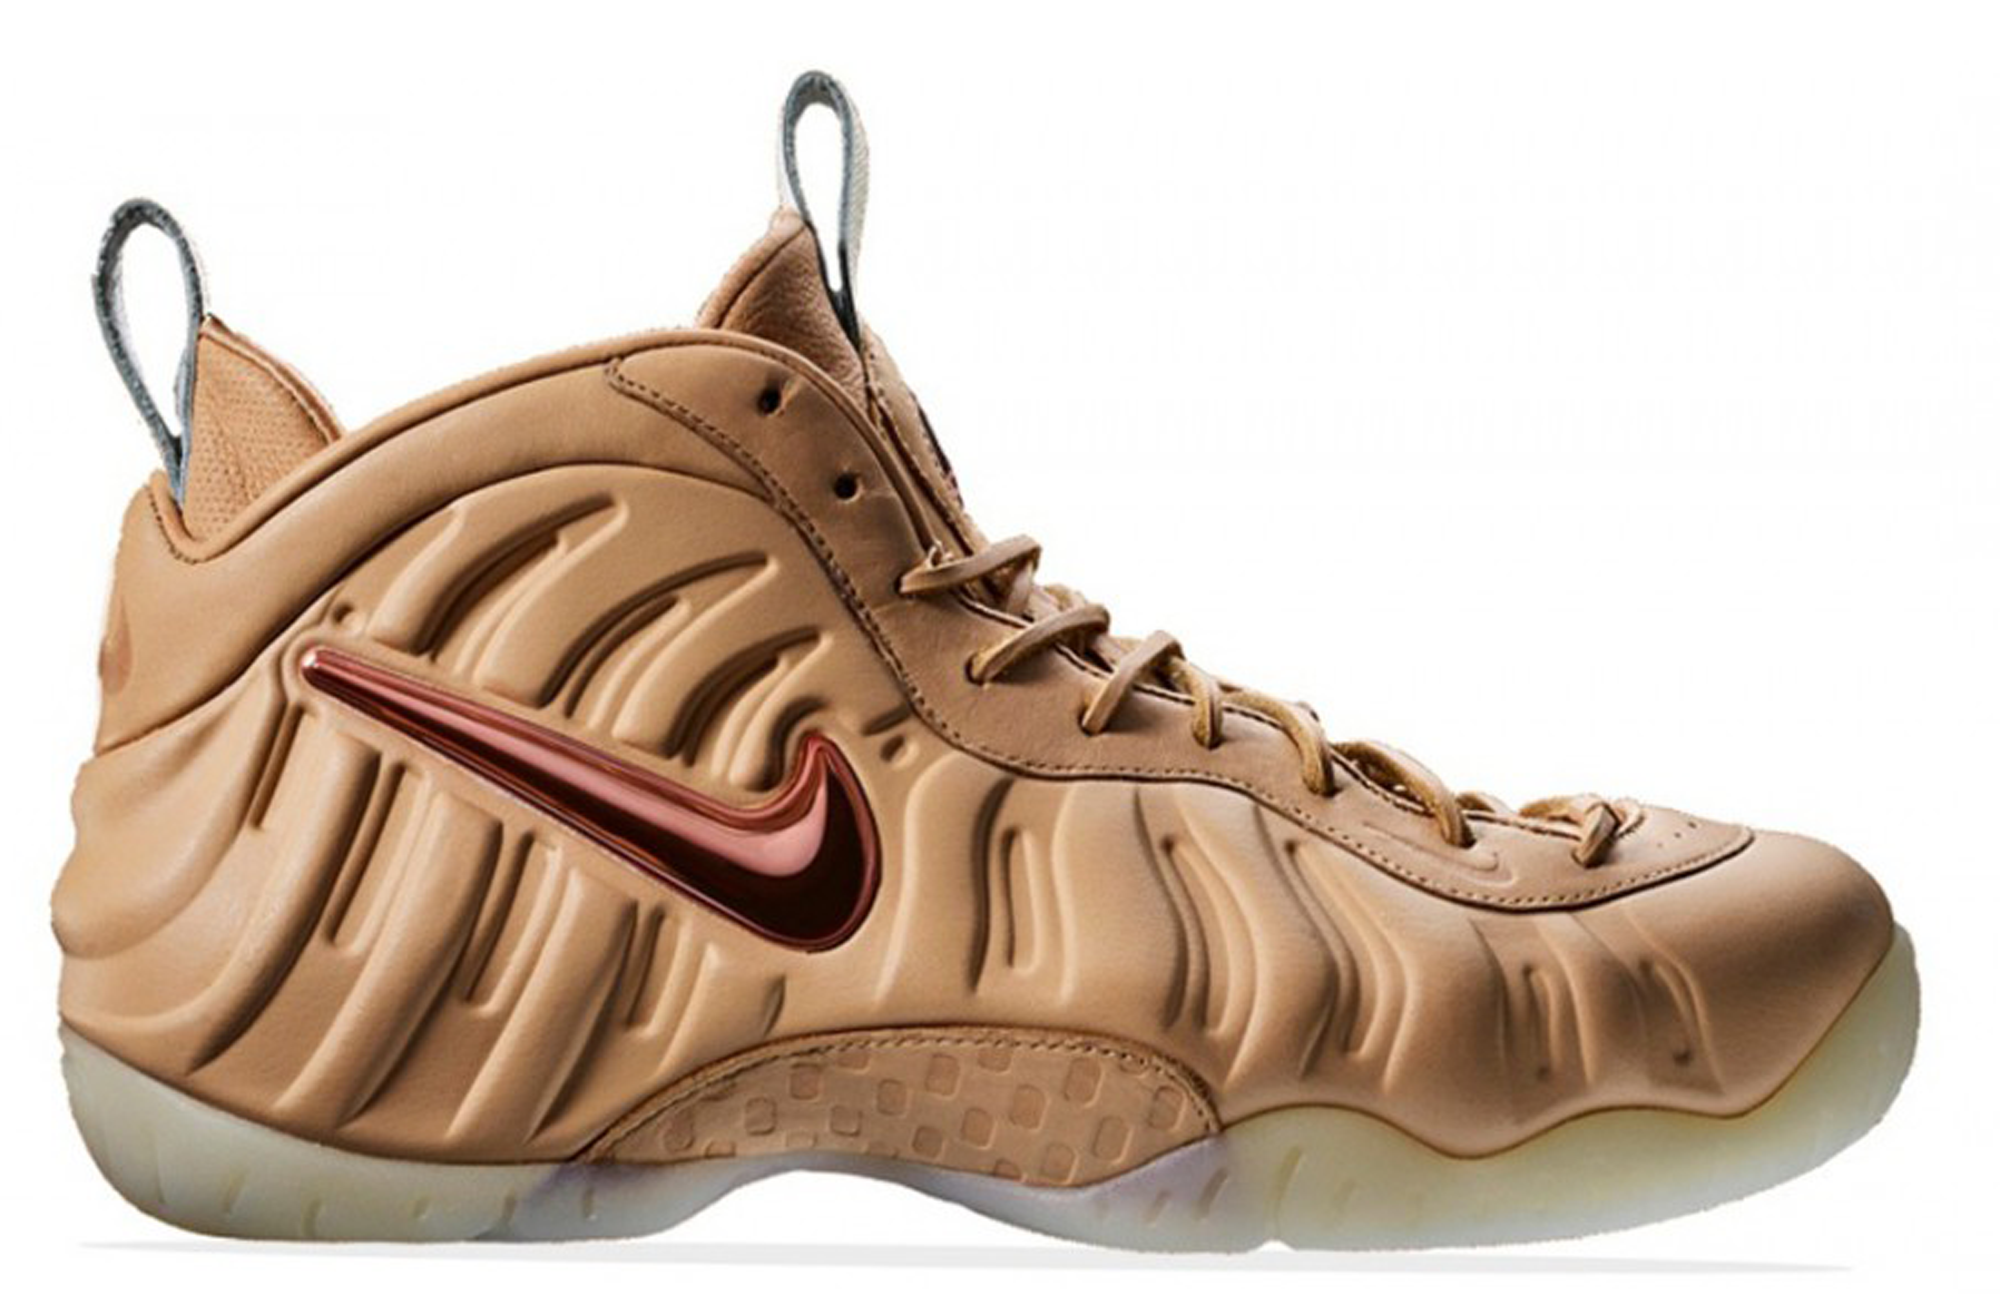 4febbd9814dbc Nike Air Foamposite Pro All Star Vachetta Tan - StockX News